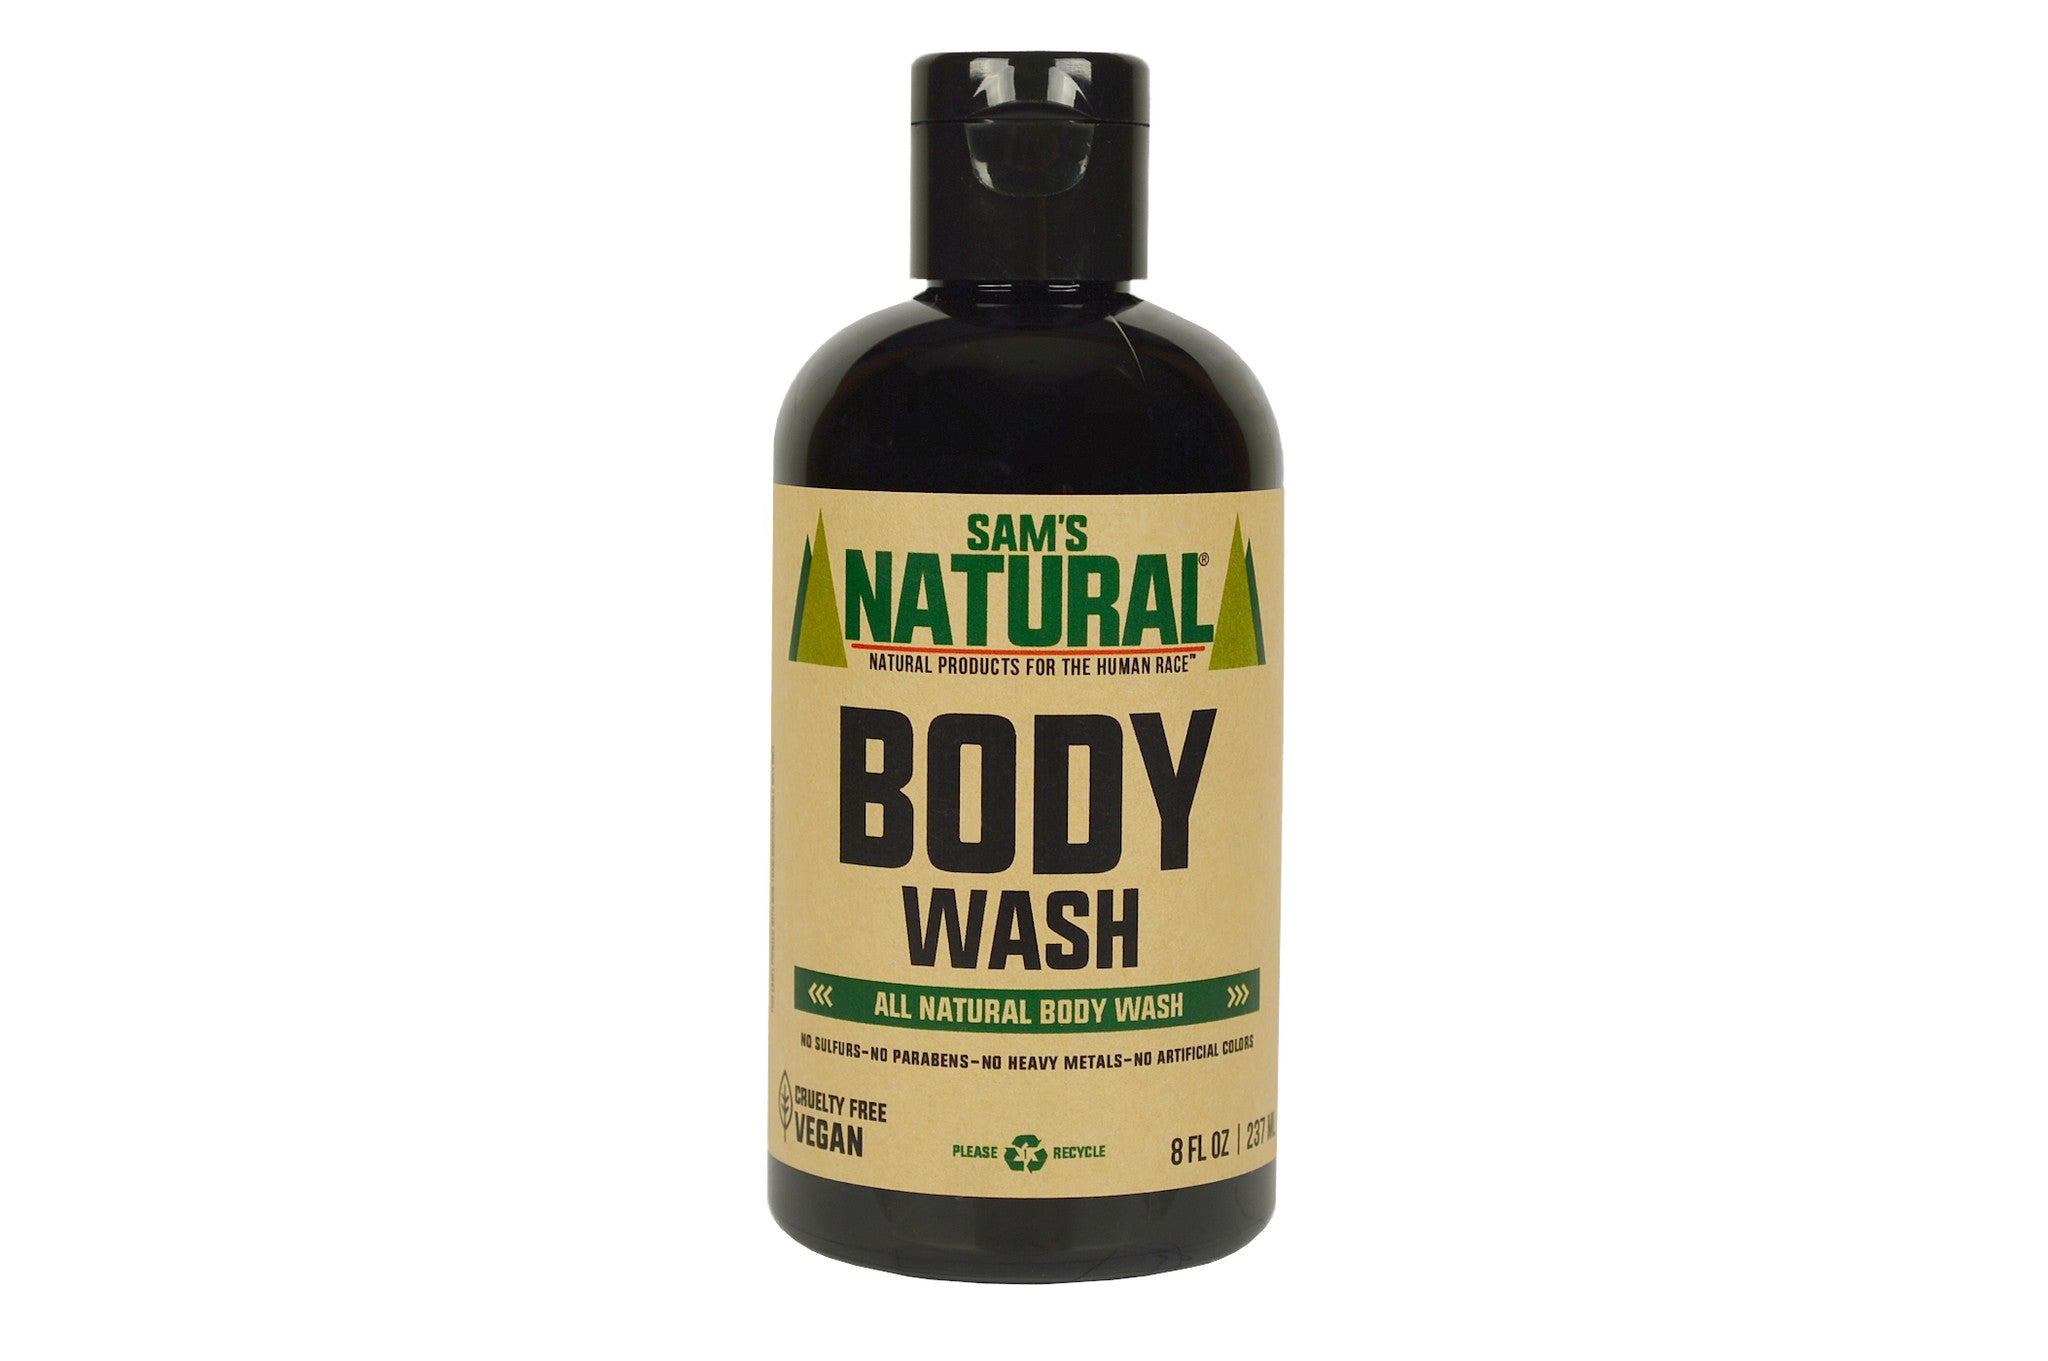 Sam's Natural Body Wash